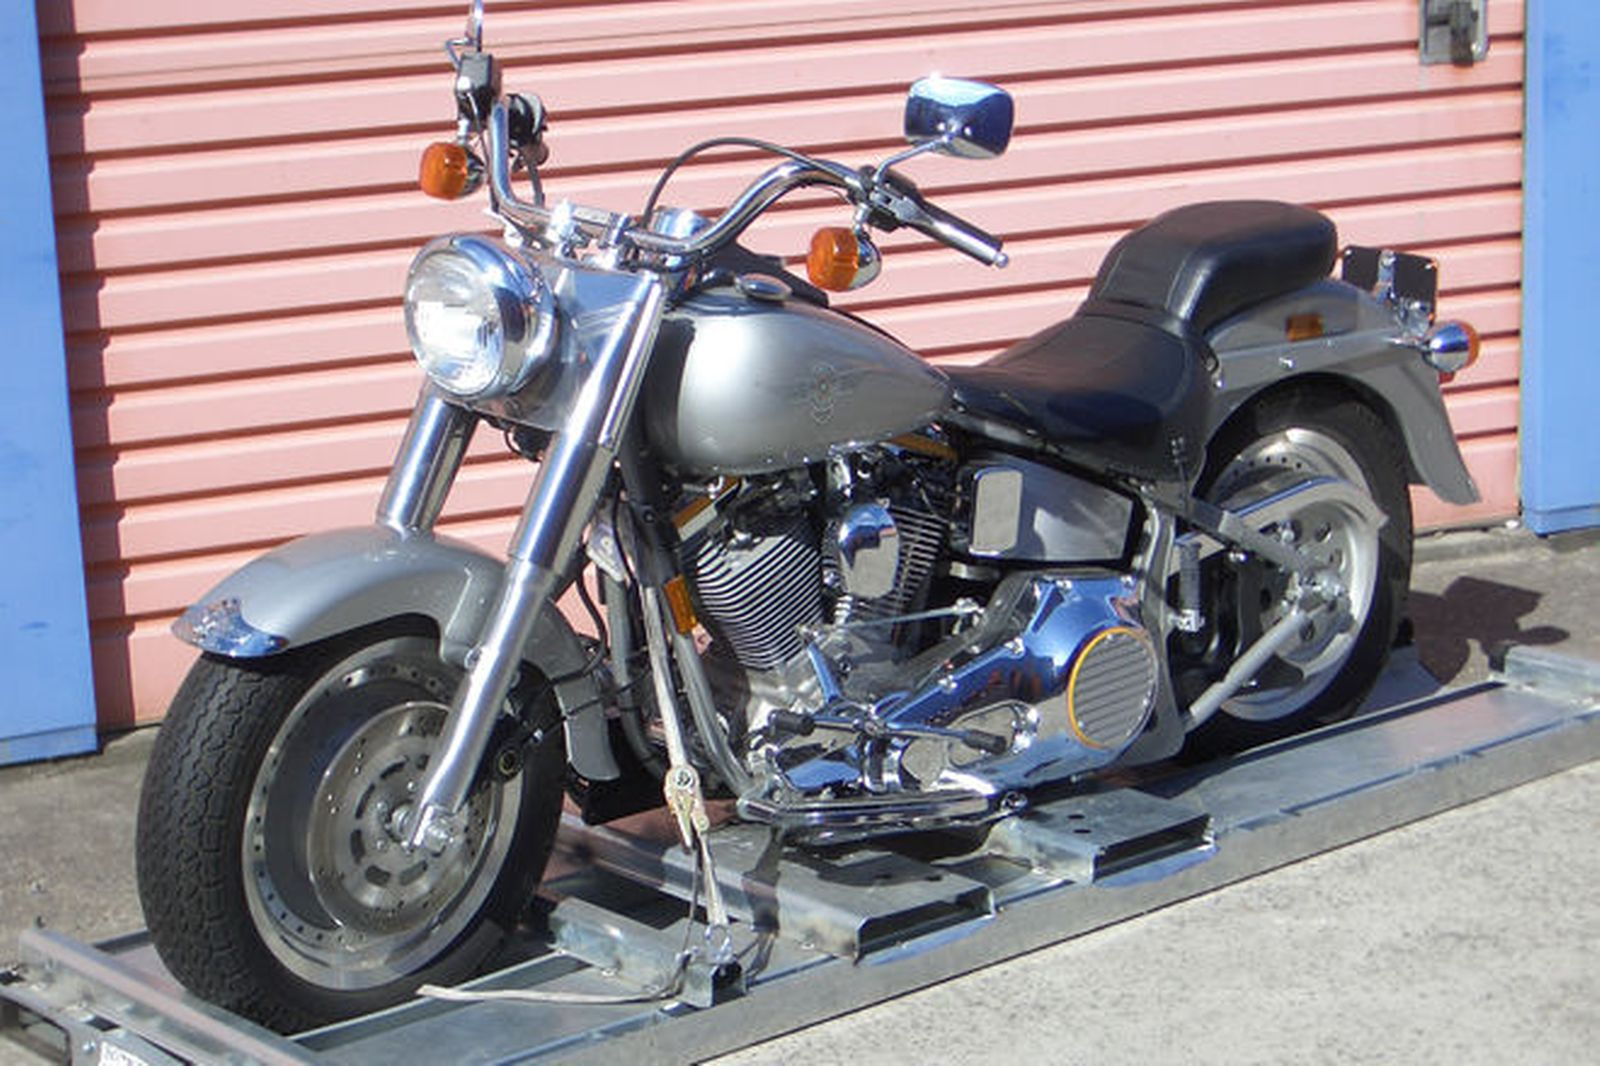 Harley Davidson Flstf Fat Boy 1990 in addition Agitator Pmi in addition Separators Milk Whey Cream Butter Oil likewise 48 Series Center Drive Flat Belt Conveyors additionally We followed a truck full of golden retrievers 8. on drive belt types